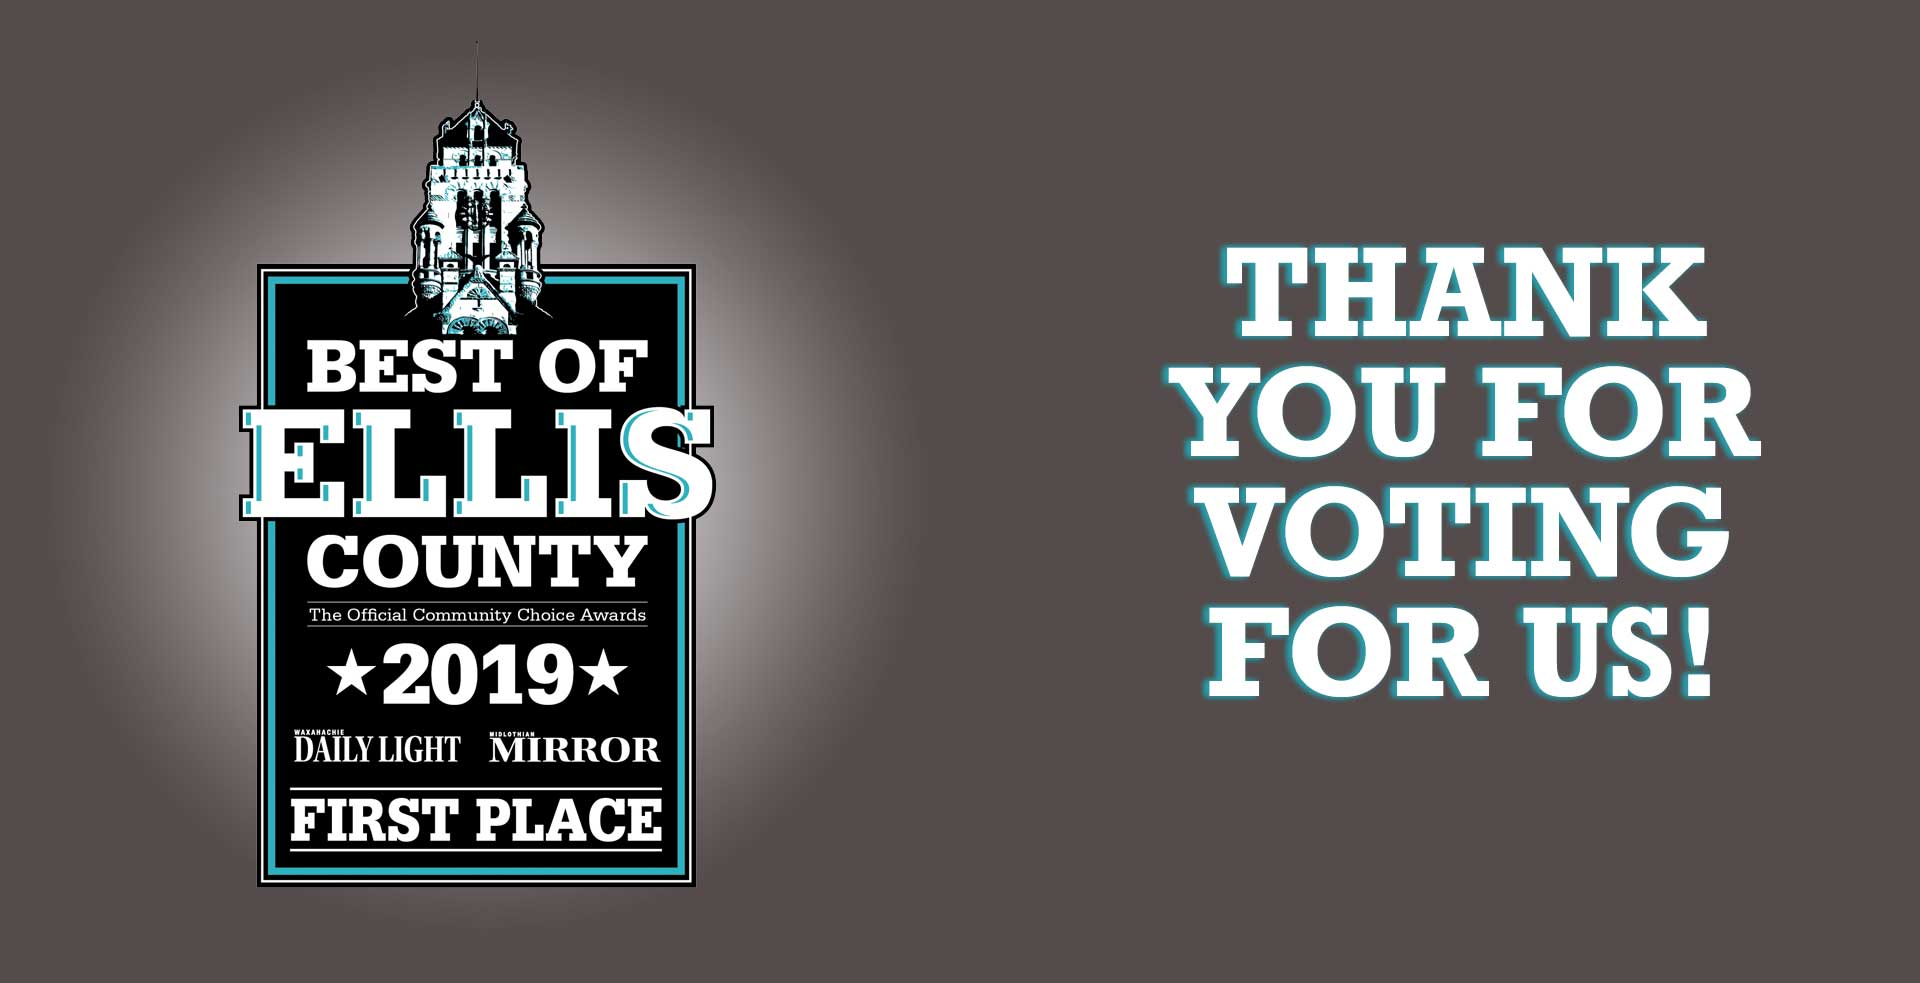 logo for Best of Ellis County Community Choice Winner with thank you message